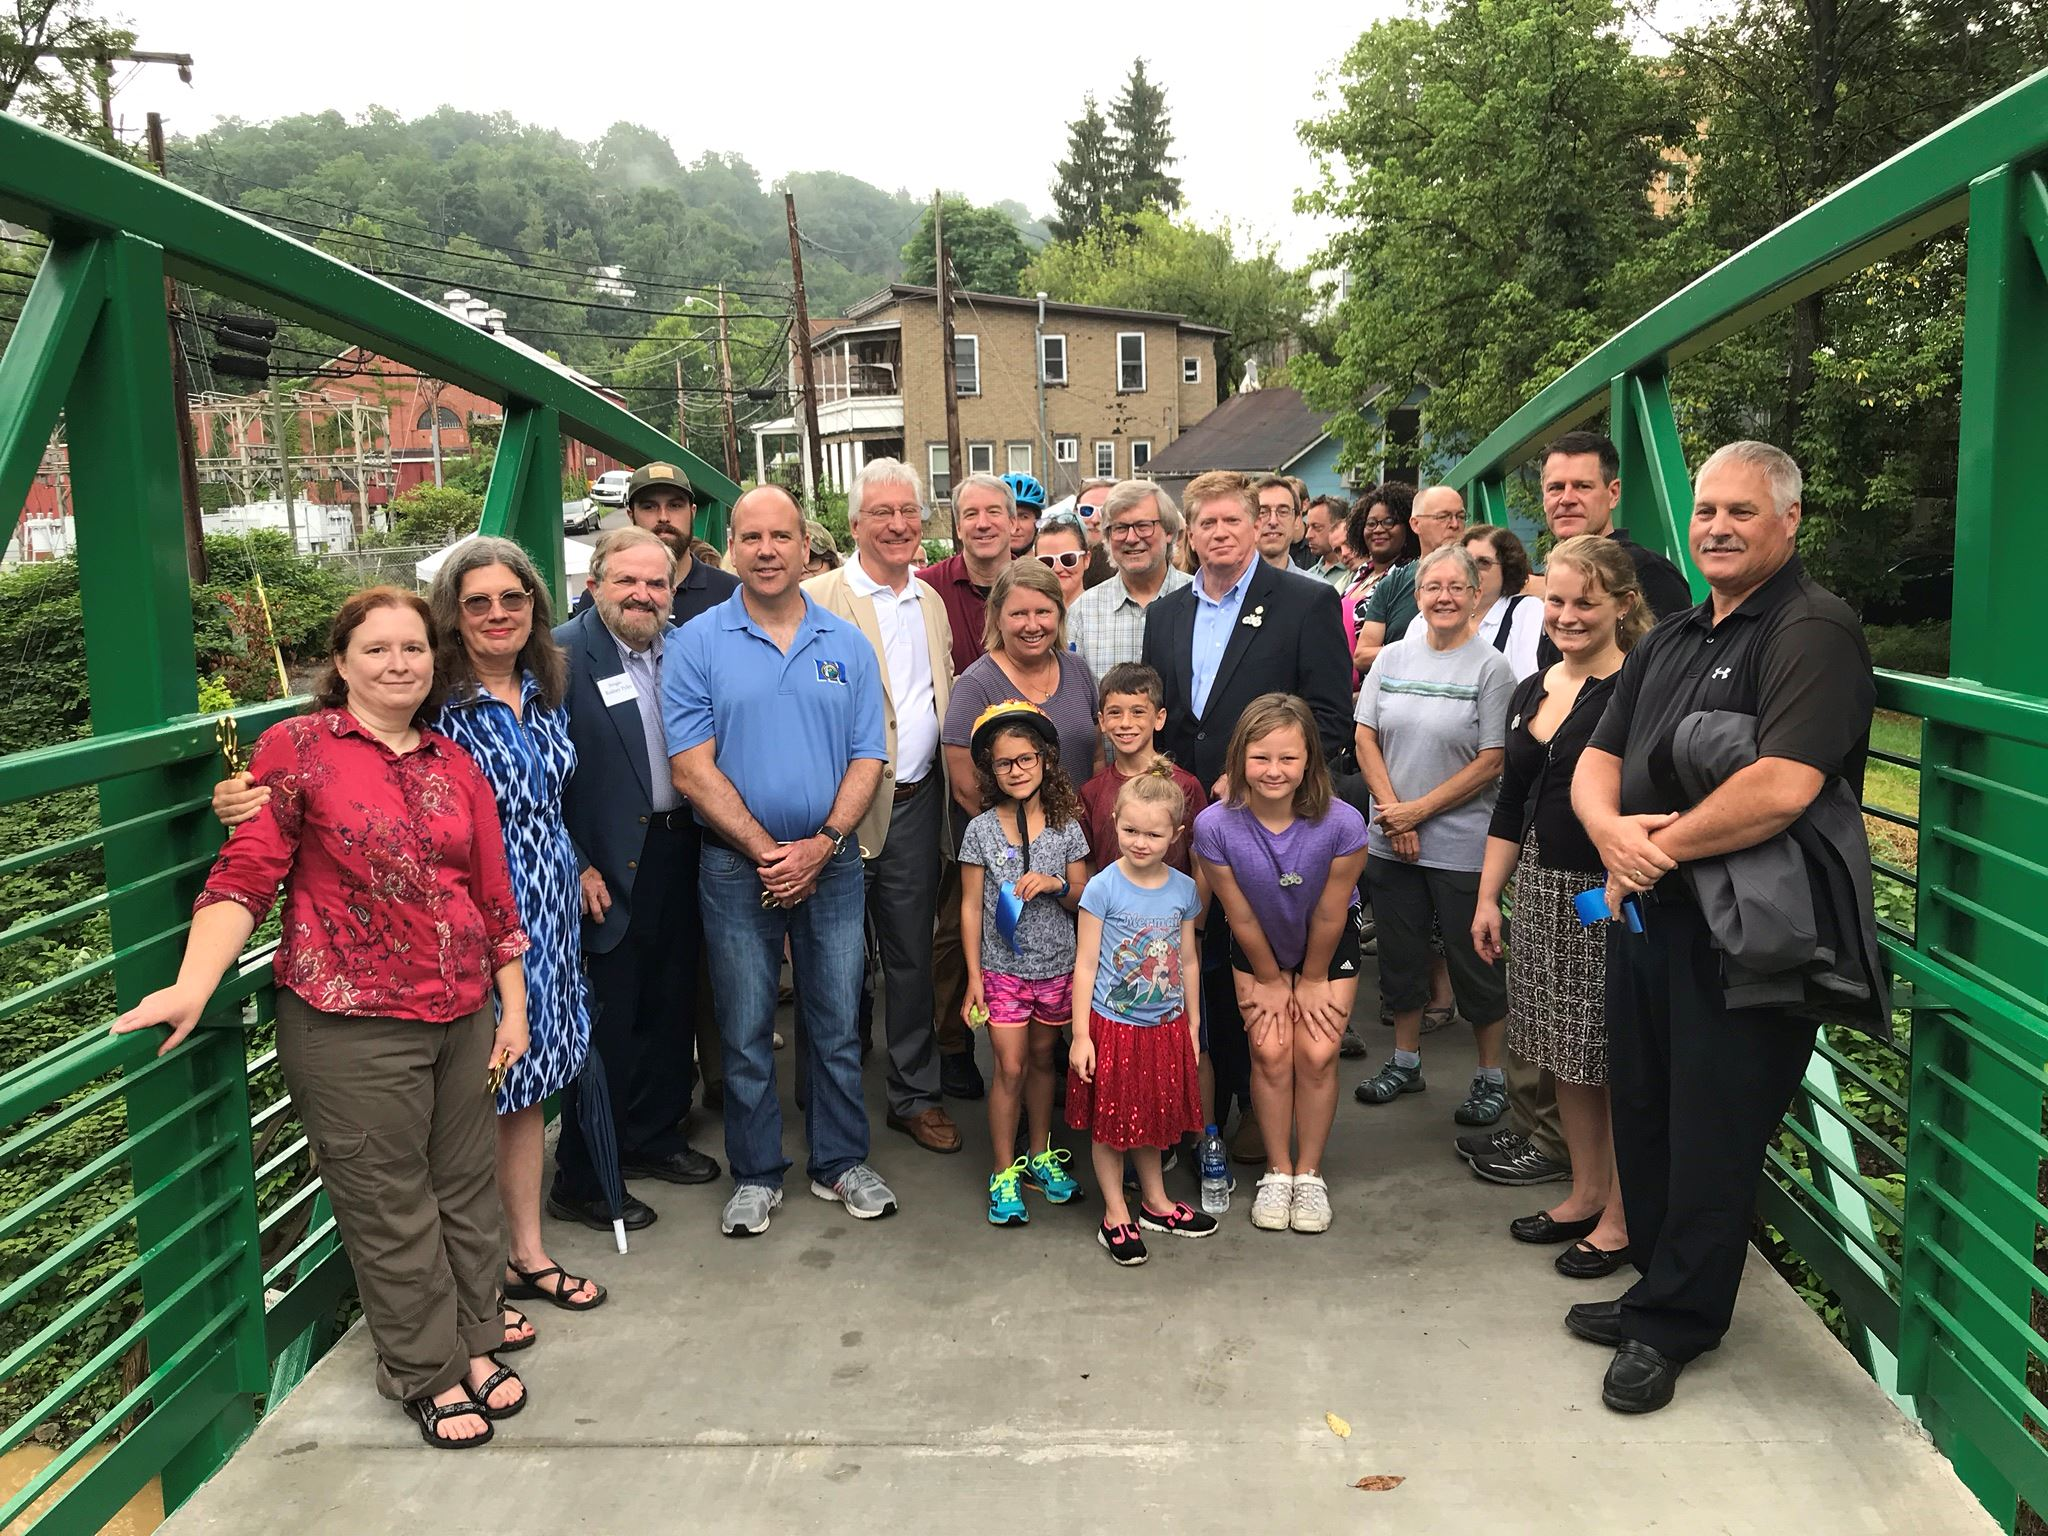 A group picture of people that attended the opening of the Deckers Creek Pedestrian Bridge.